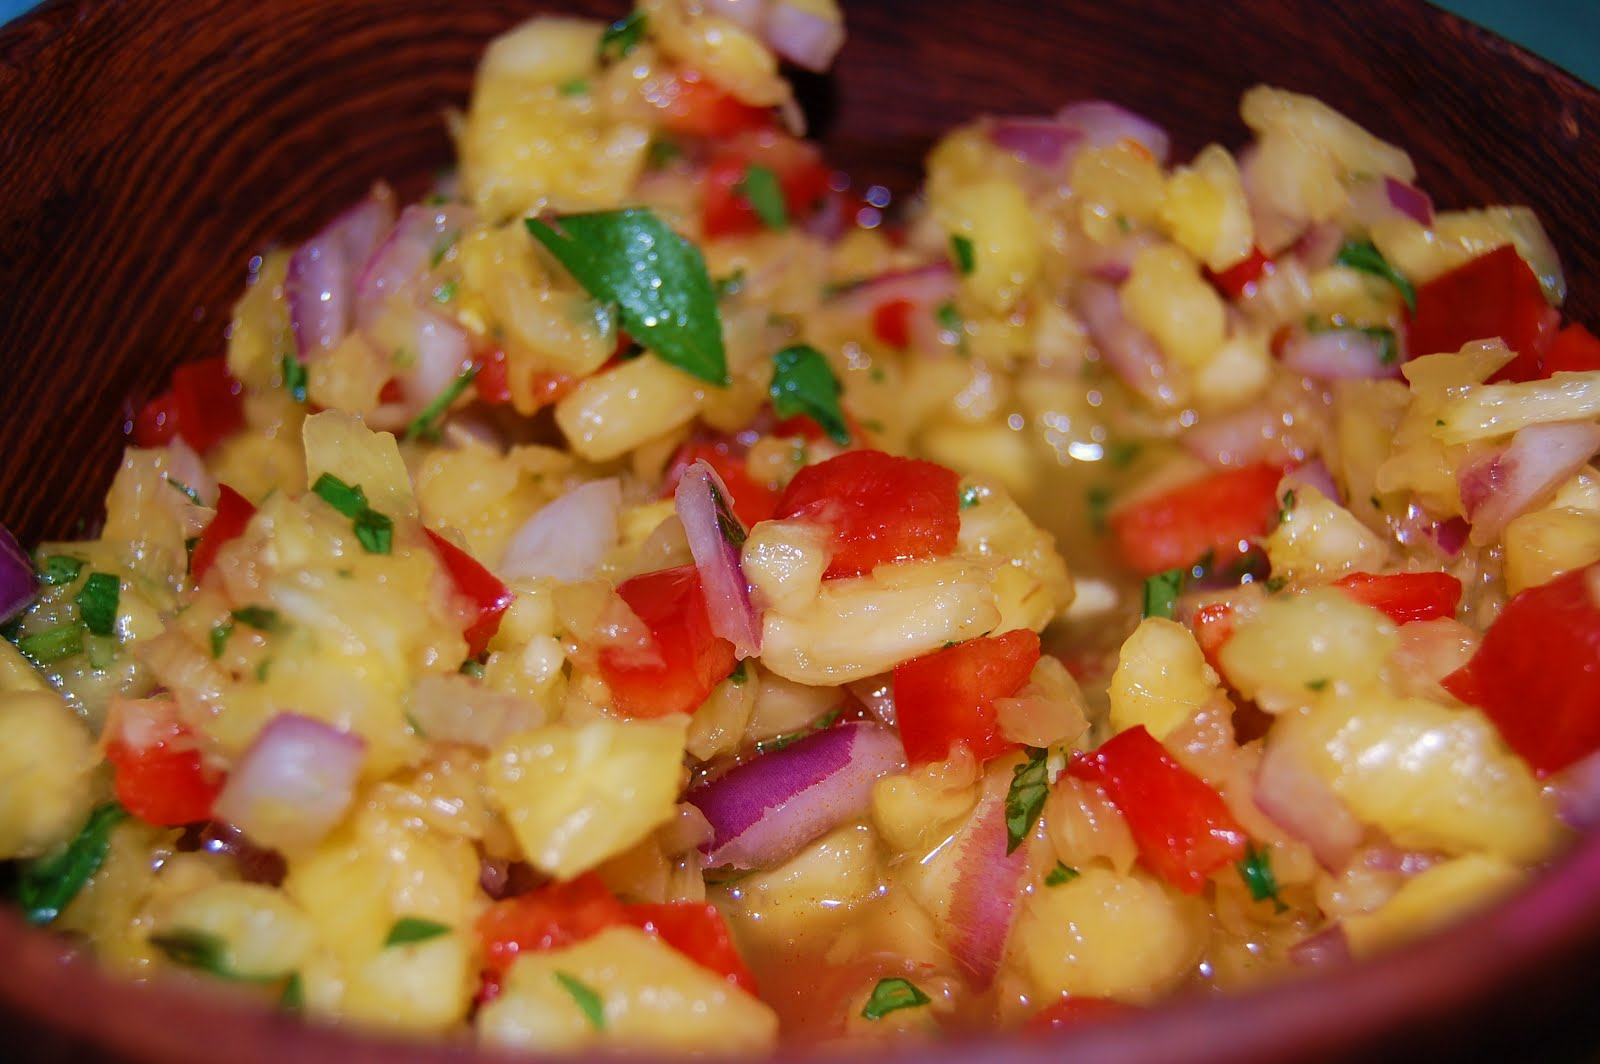 KnitOne,PearlOnion: Grilled Shrimp with Pineapple Salsa